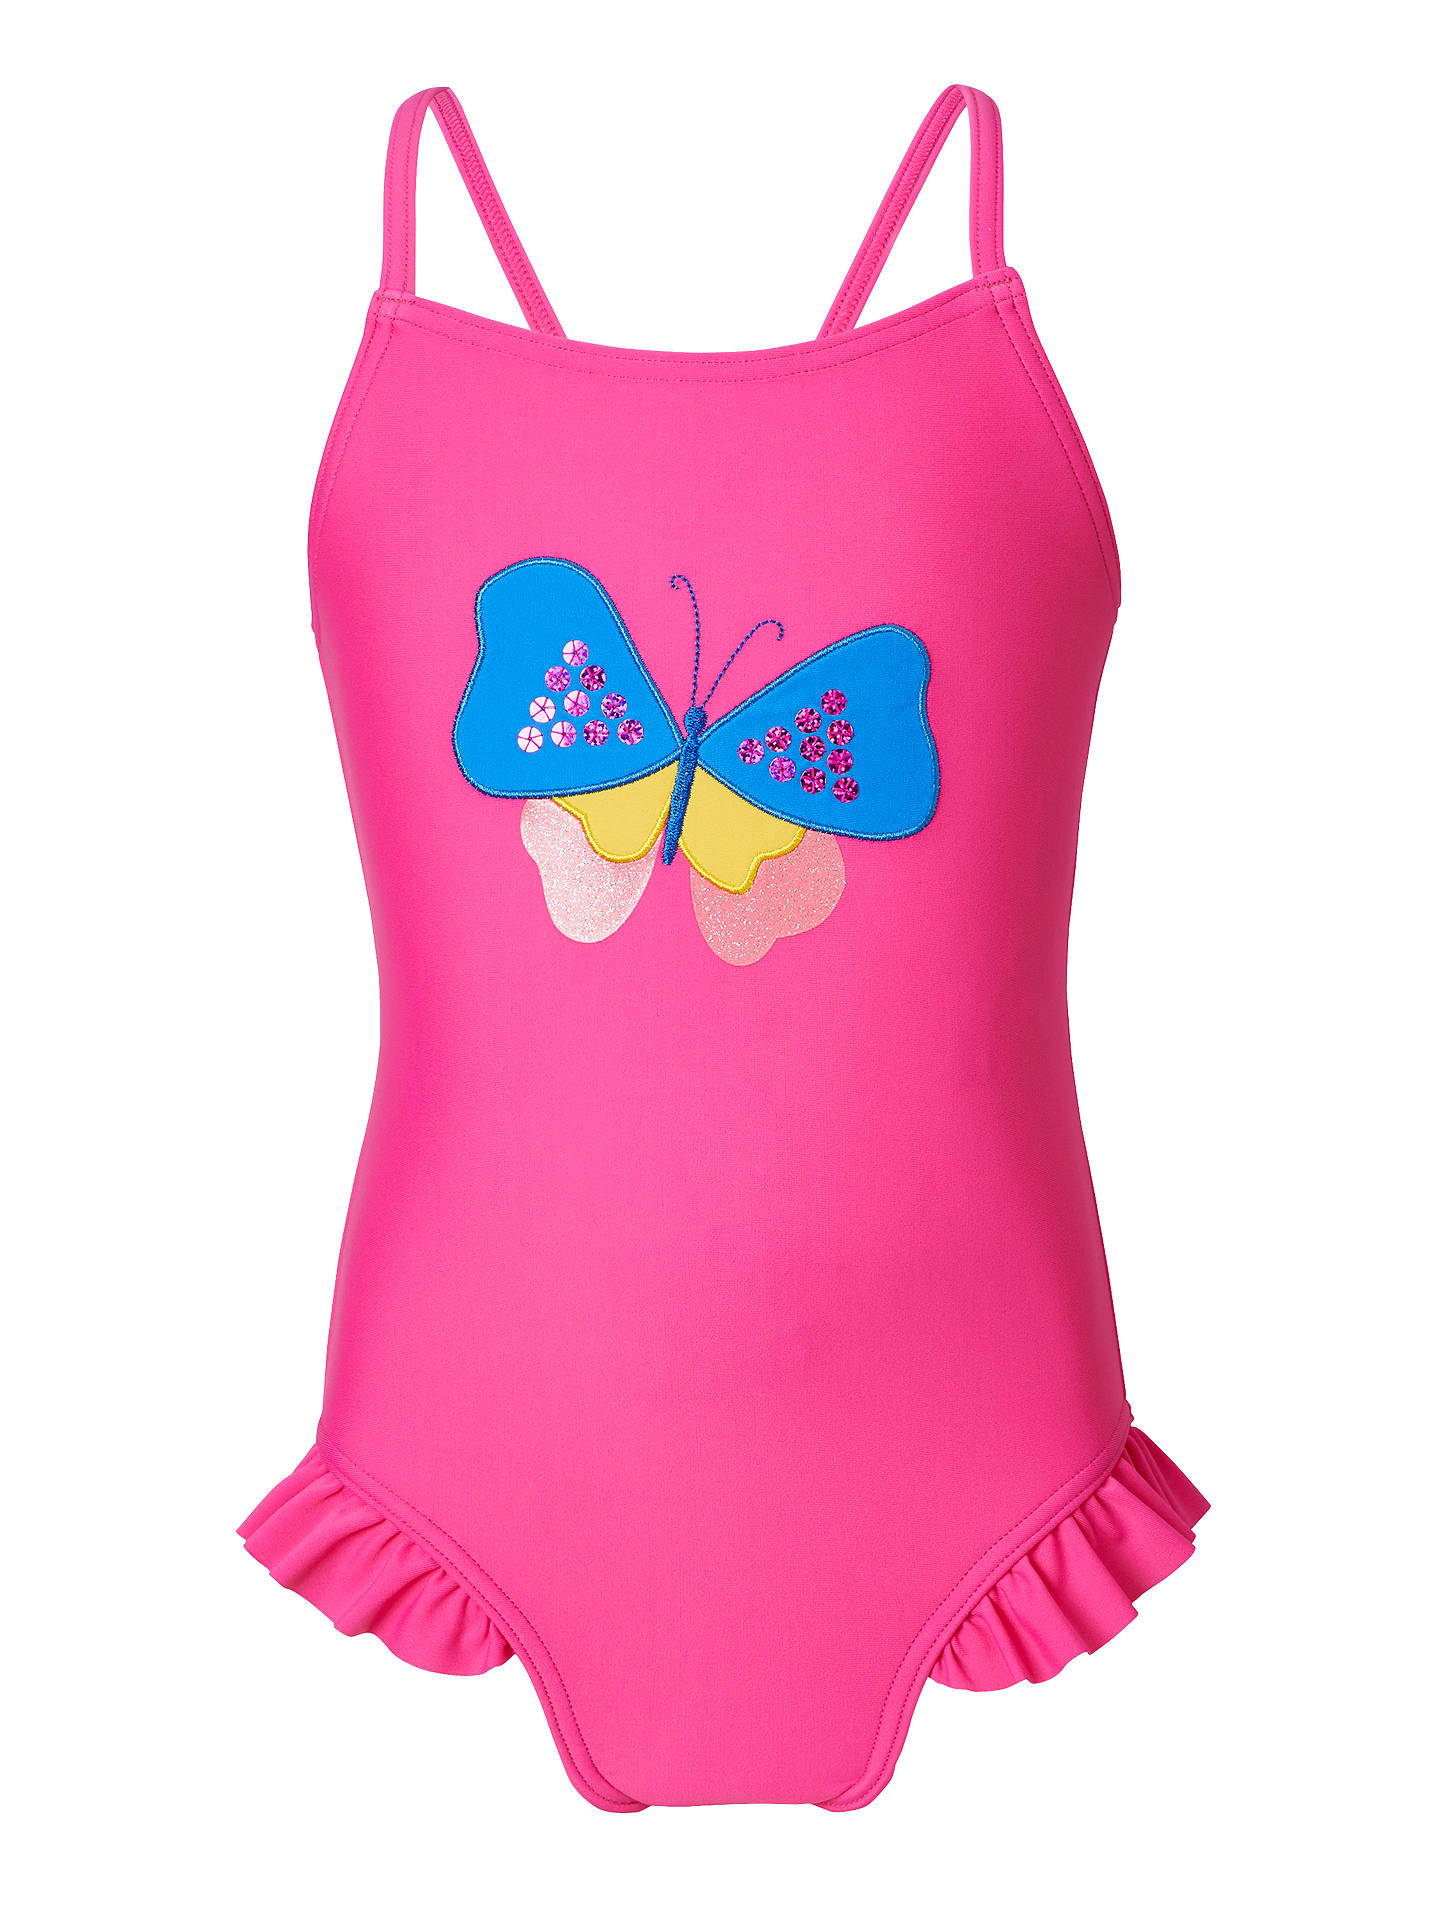 BuyJohn Lewis & Partners Girls' Butterfly Applique Swimsuit, Pink, 2 years Online at johnlewis.com